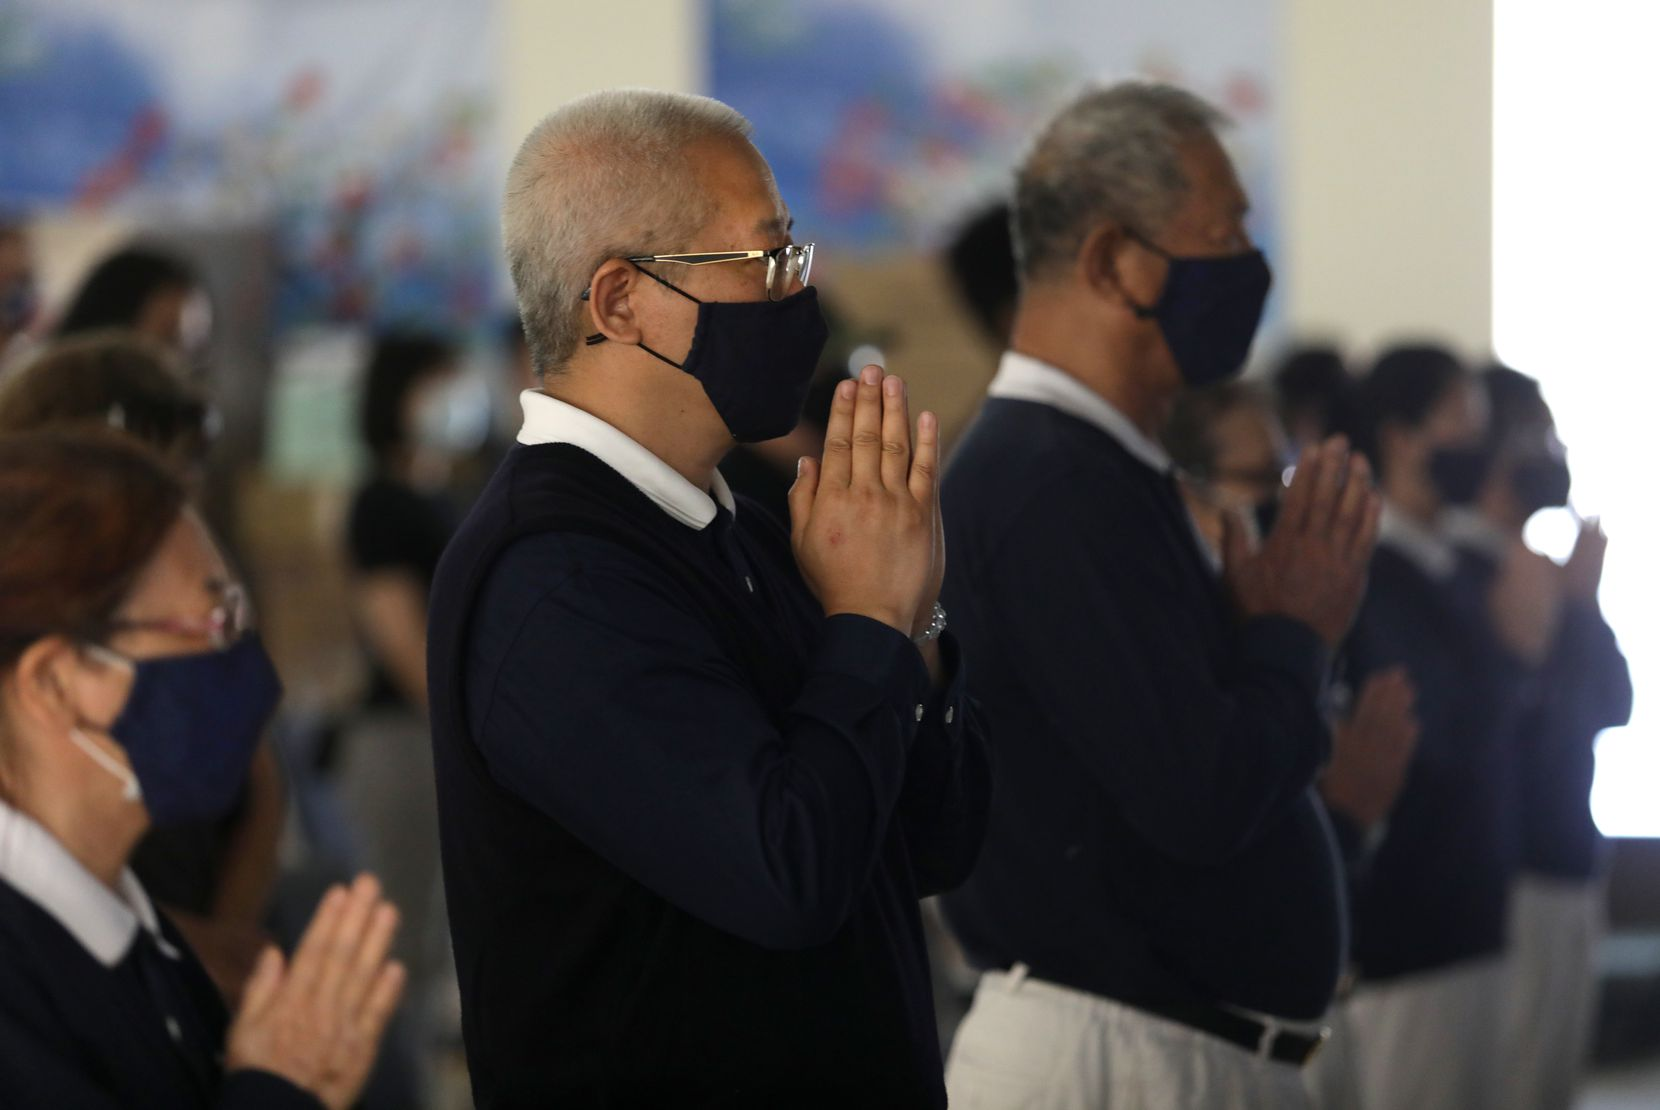 Members of the Tzu Chi foundation say a prayer at the Tzu Chi foundation in Richardson, TX, on Apr. 25, 2021. (Jason Janik/Special Contributor)